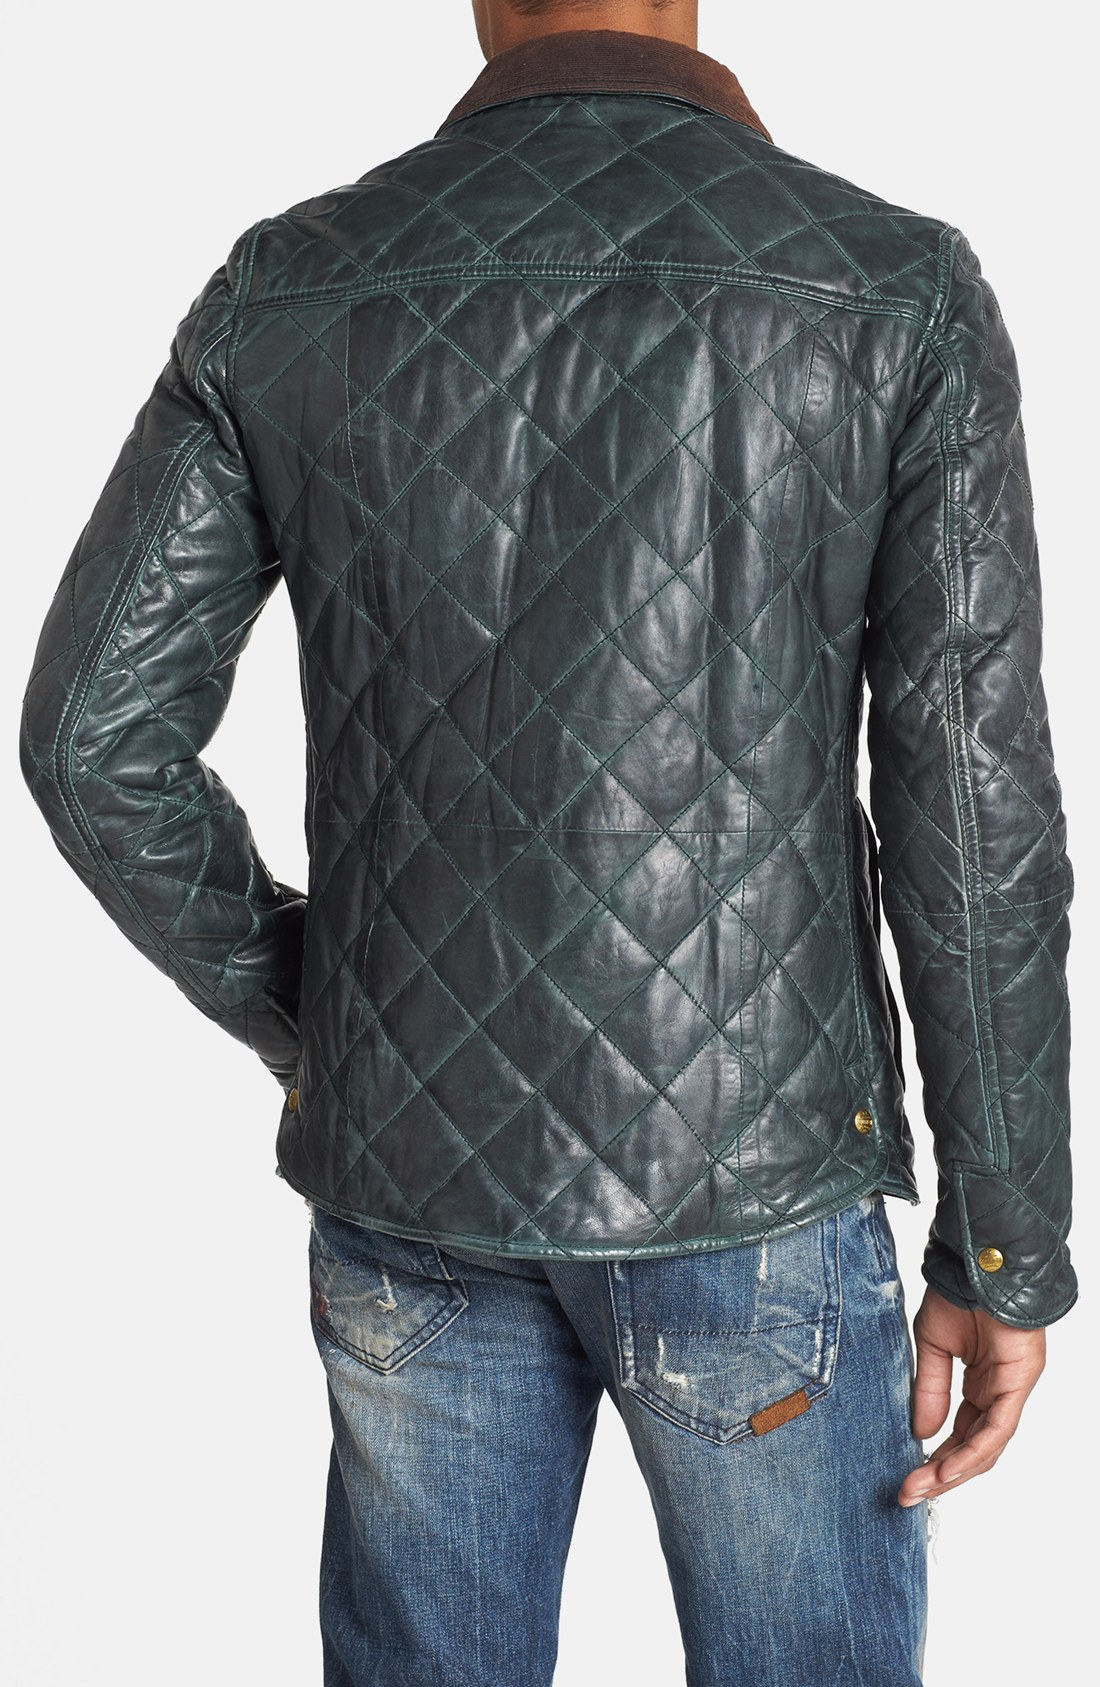 Scotch & soda Quilted Leather Jacket in Green for Men | Lyst : scotch and soda quilted leather jacket - Adamdwight.com